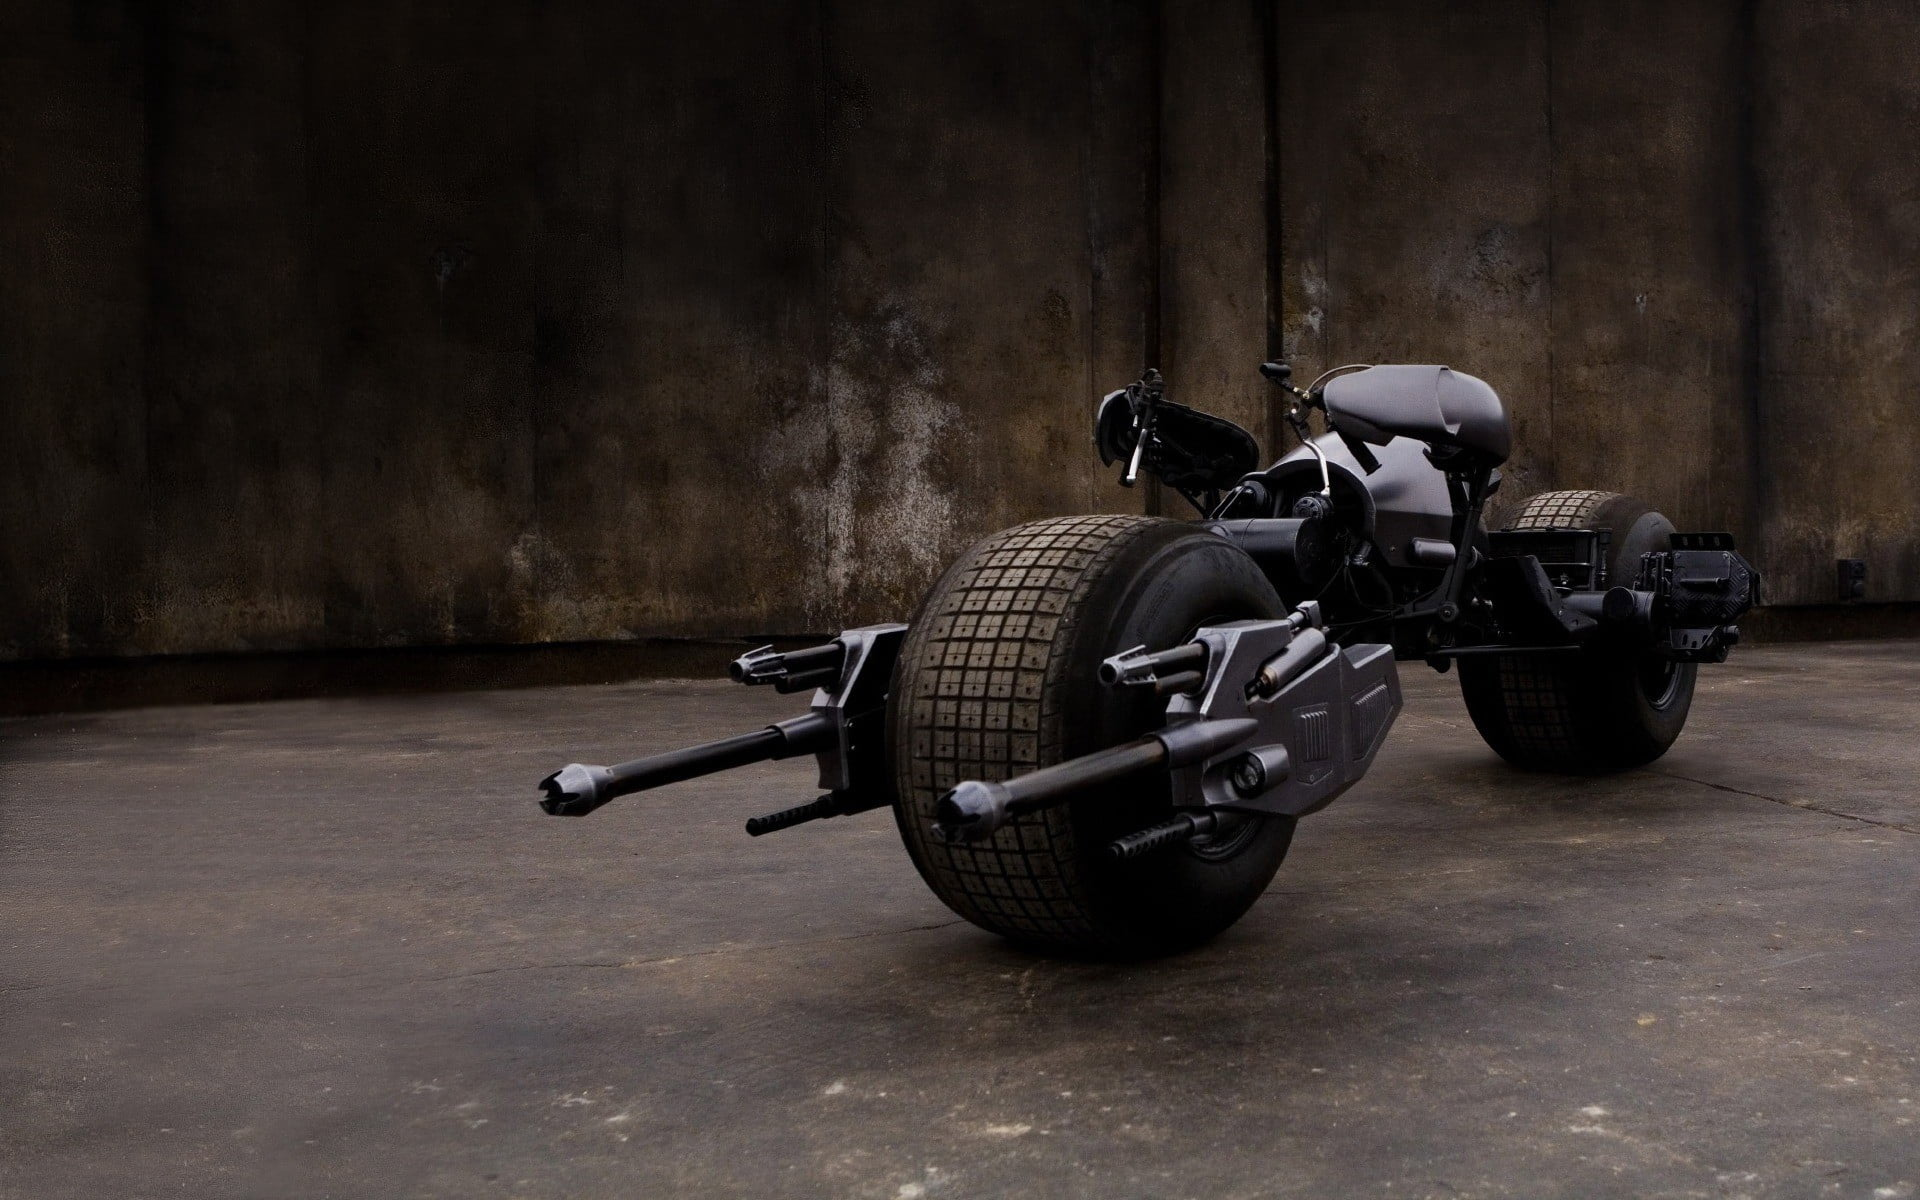 Batmans Bat bike motorcycle Batman Batpod The Dark Knight HD 1920x1200